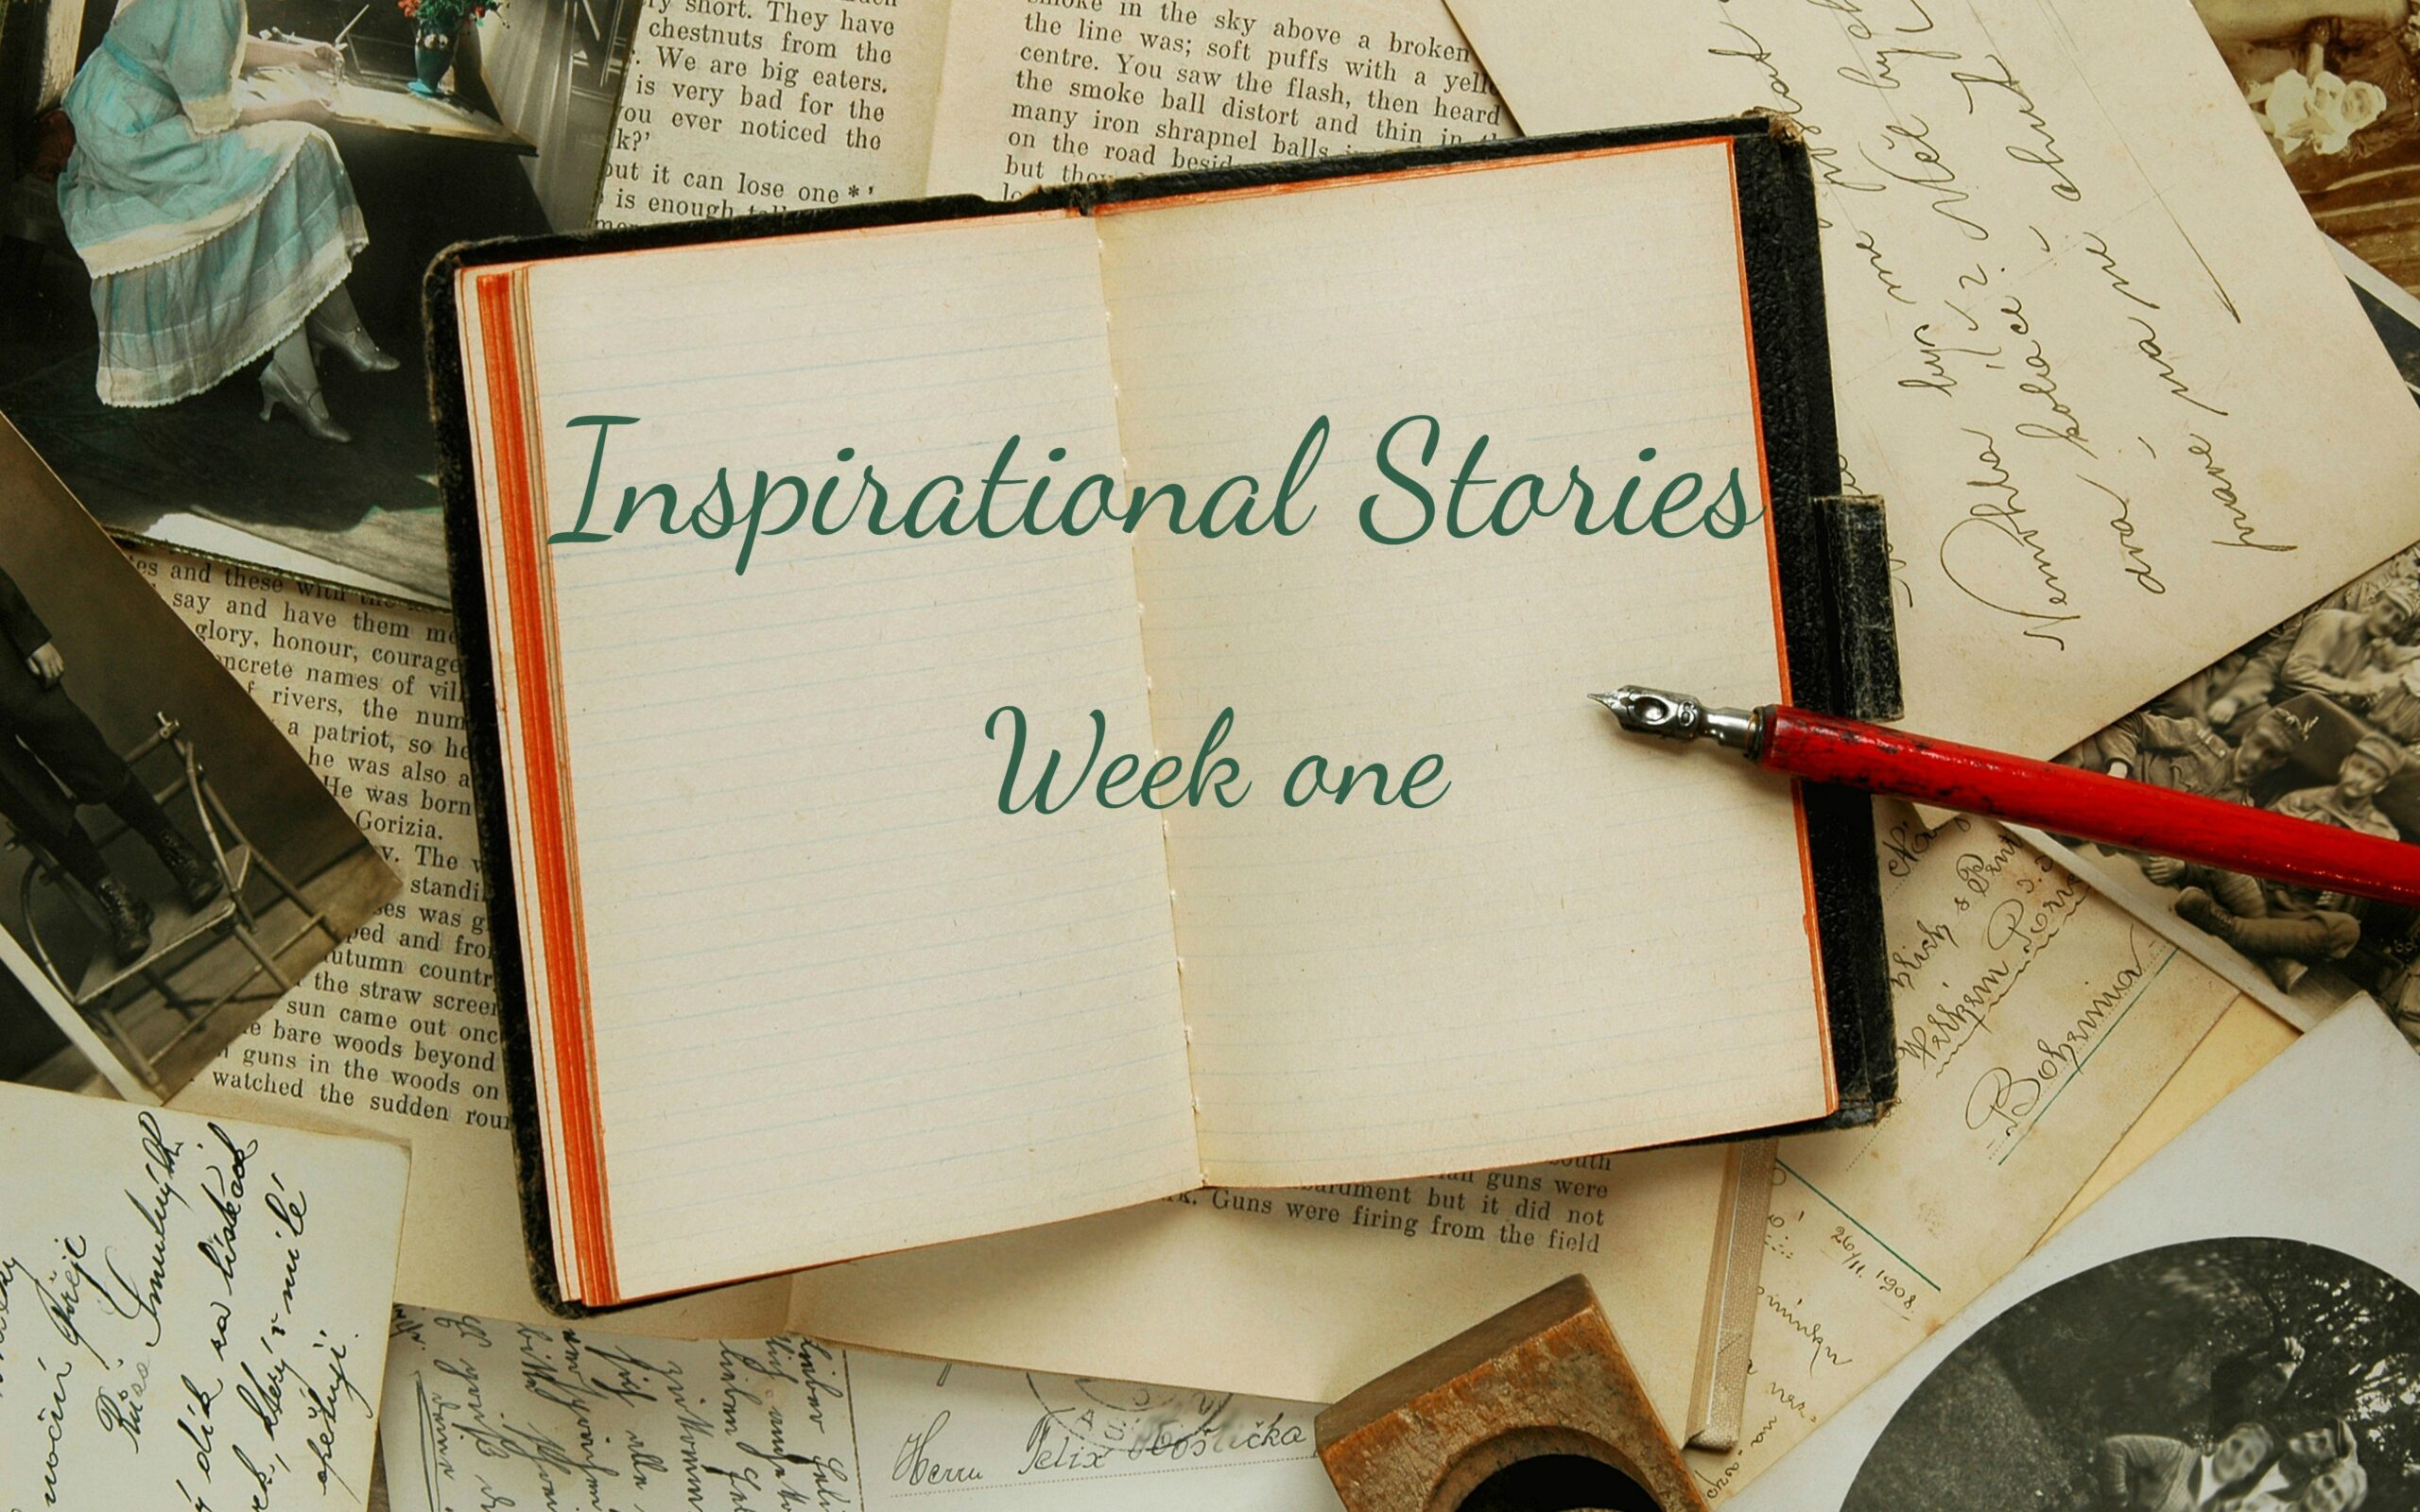 inspirational stories week one written across book